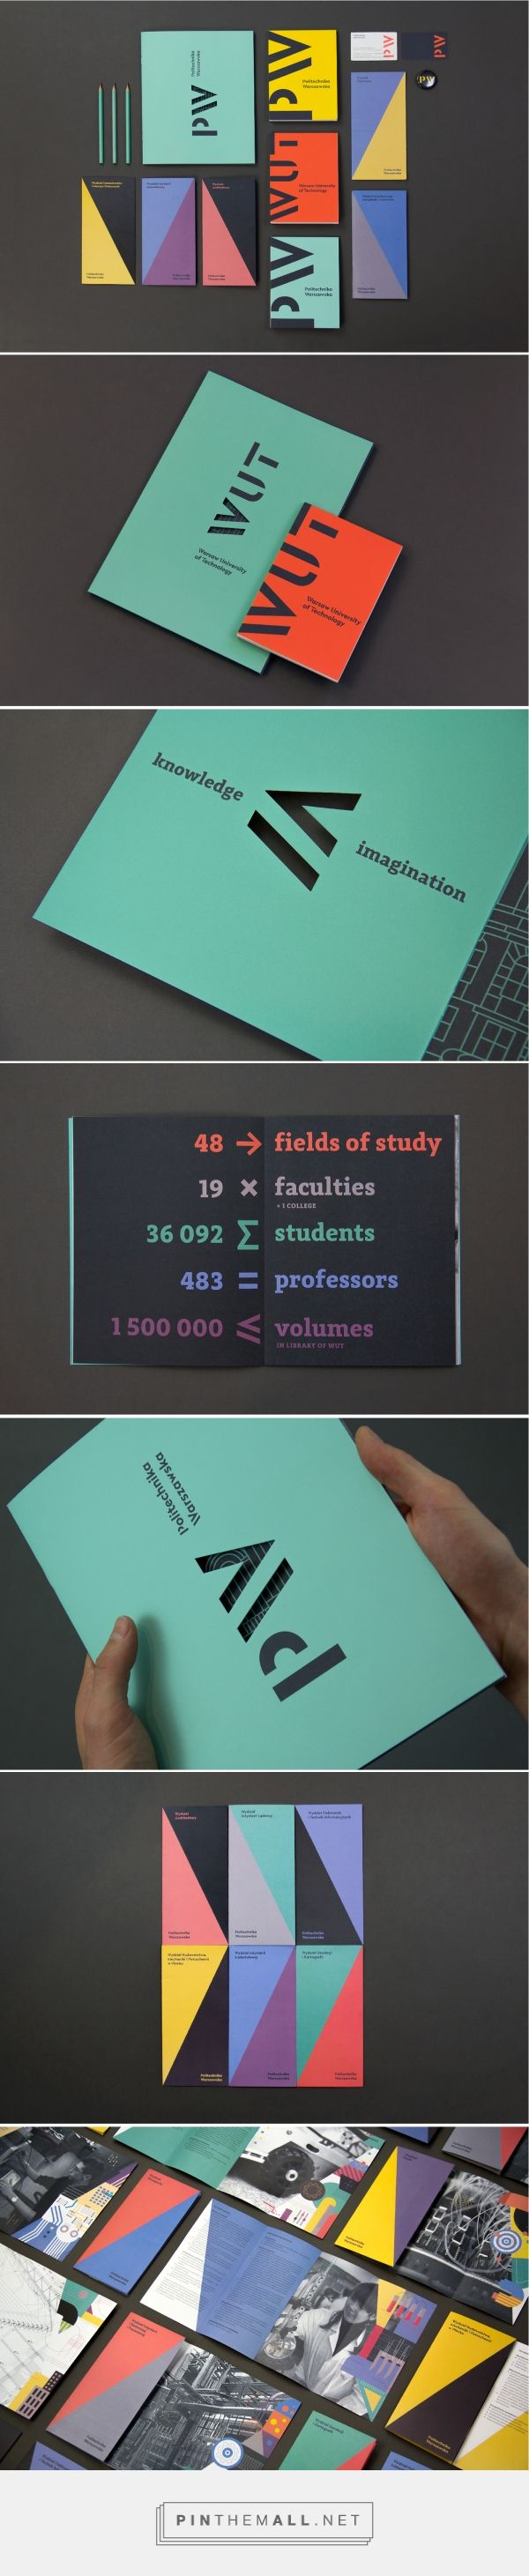 The Warsaw University of Technology Branding by Podpunkt | Fivestar Branding Agency – Design and Branding Agency & Curated Inspiration Gallery